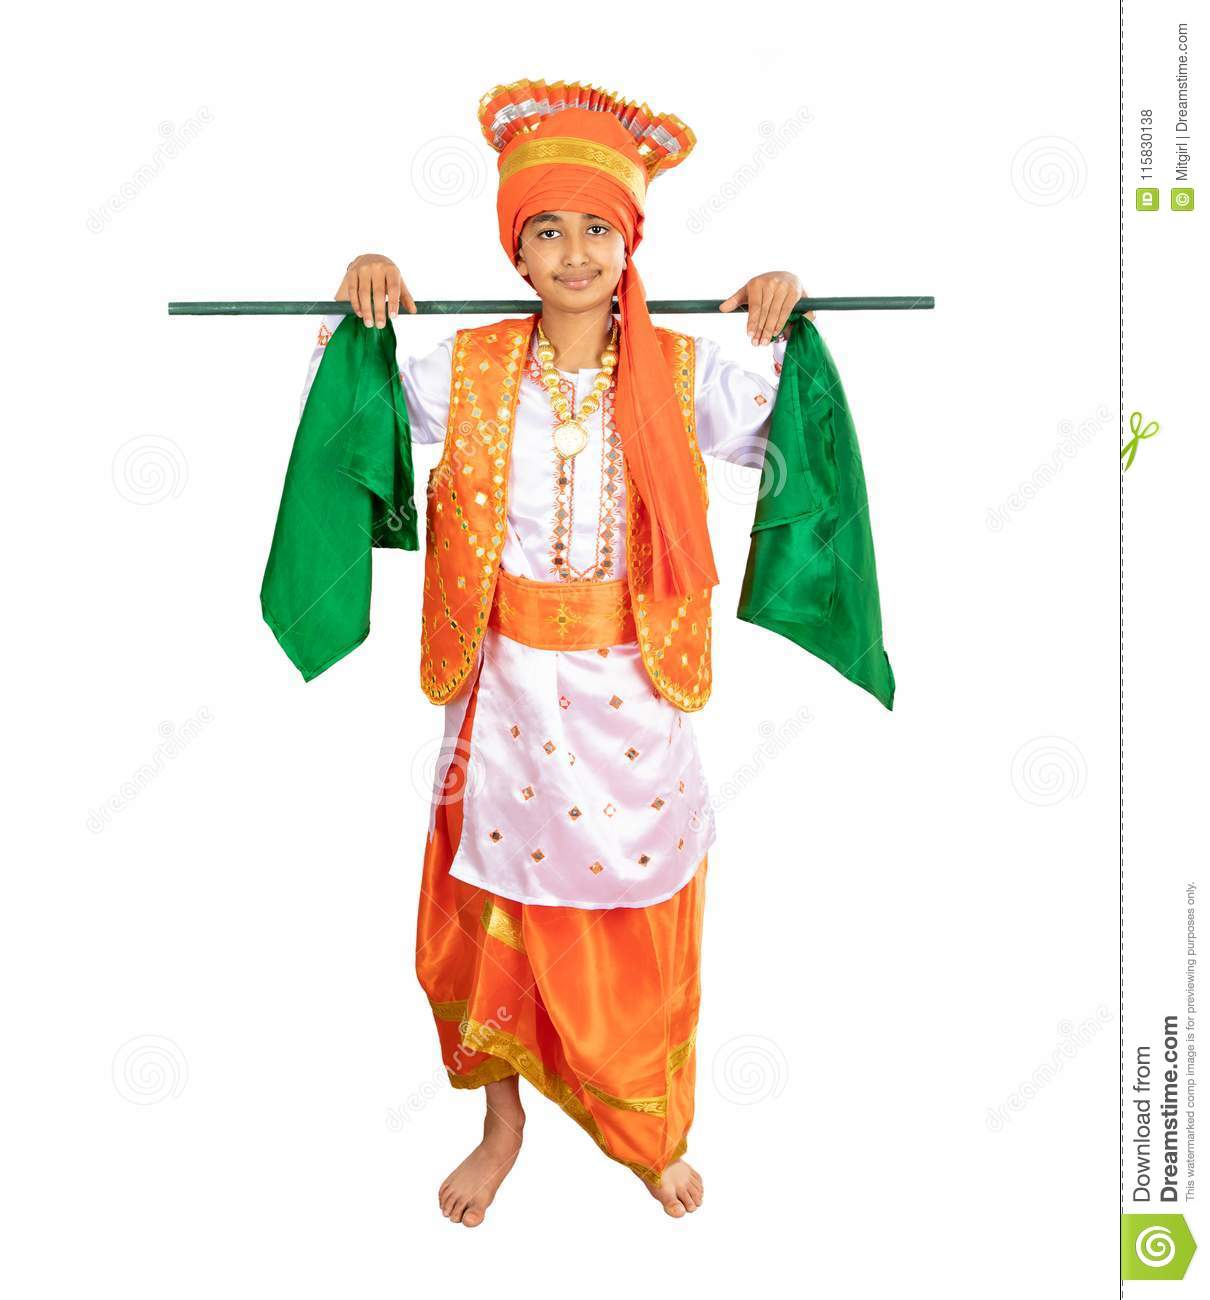 c99751c52 Young Boy Dressed in a Traditional North Indian Bhangra Dance Costume